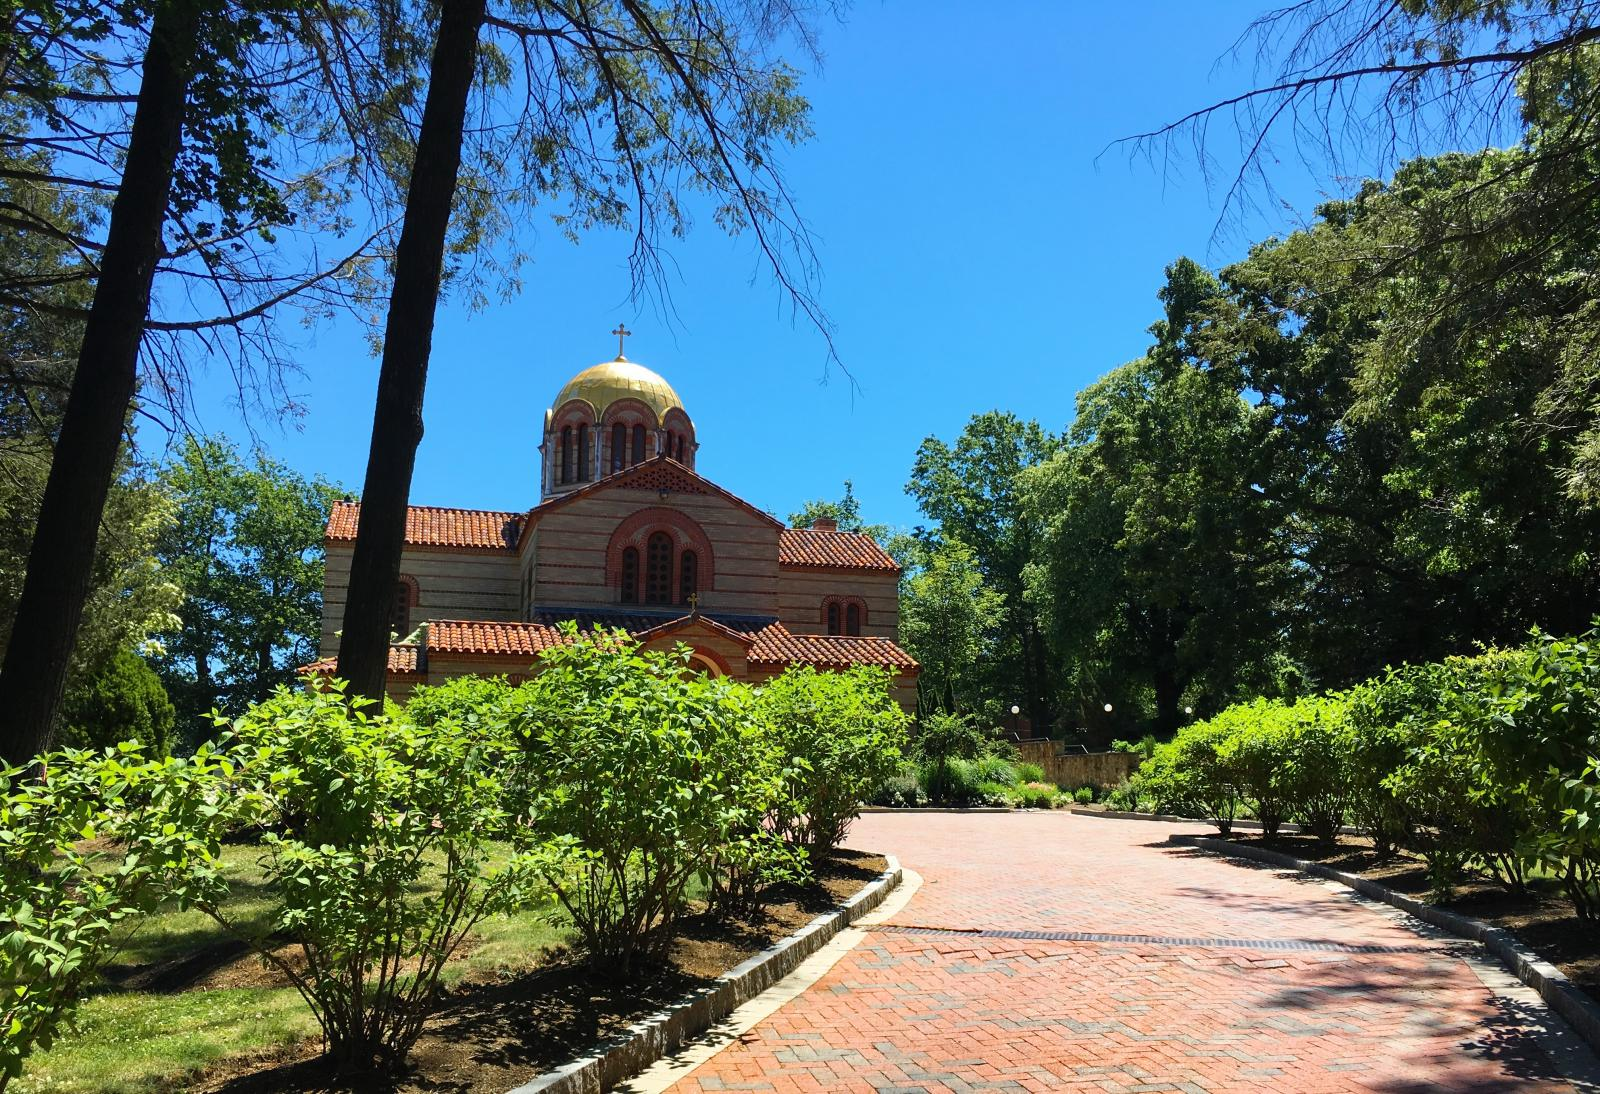 Orthodox church with golden dome and rust colored trim. Green trees. Cobblestone walkway.